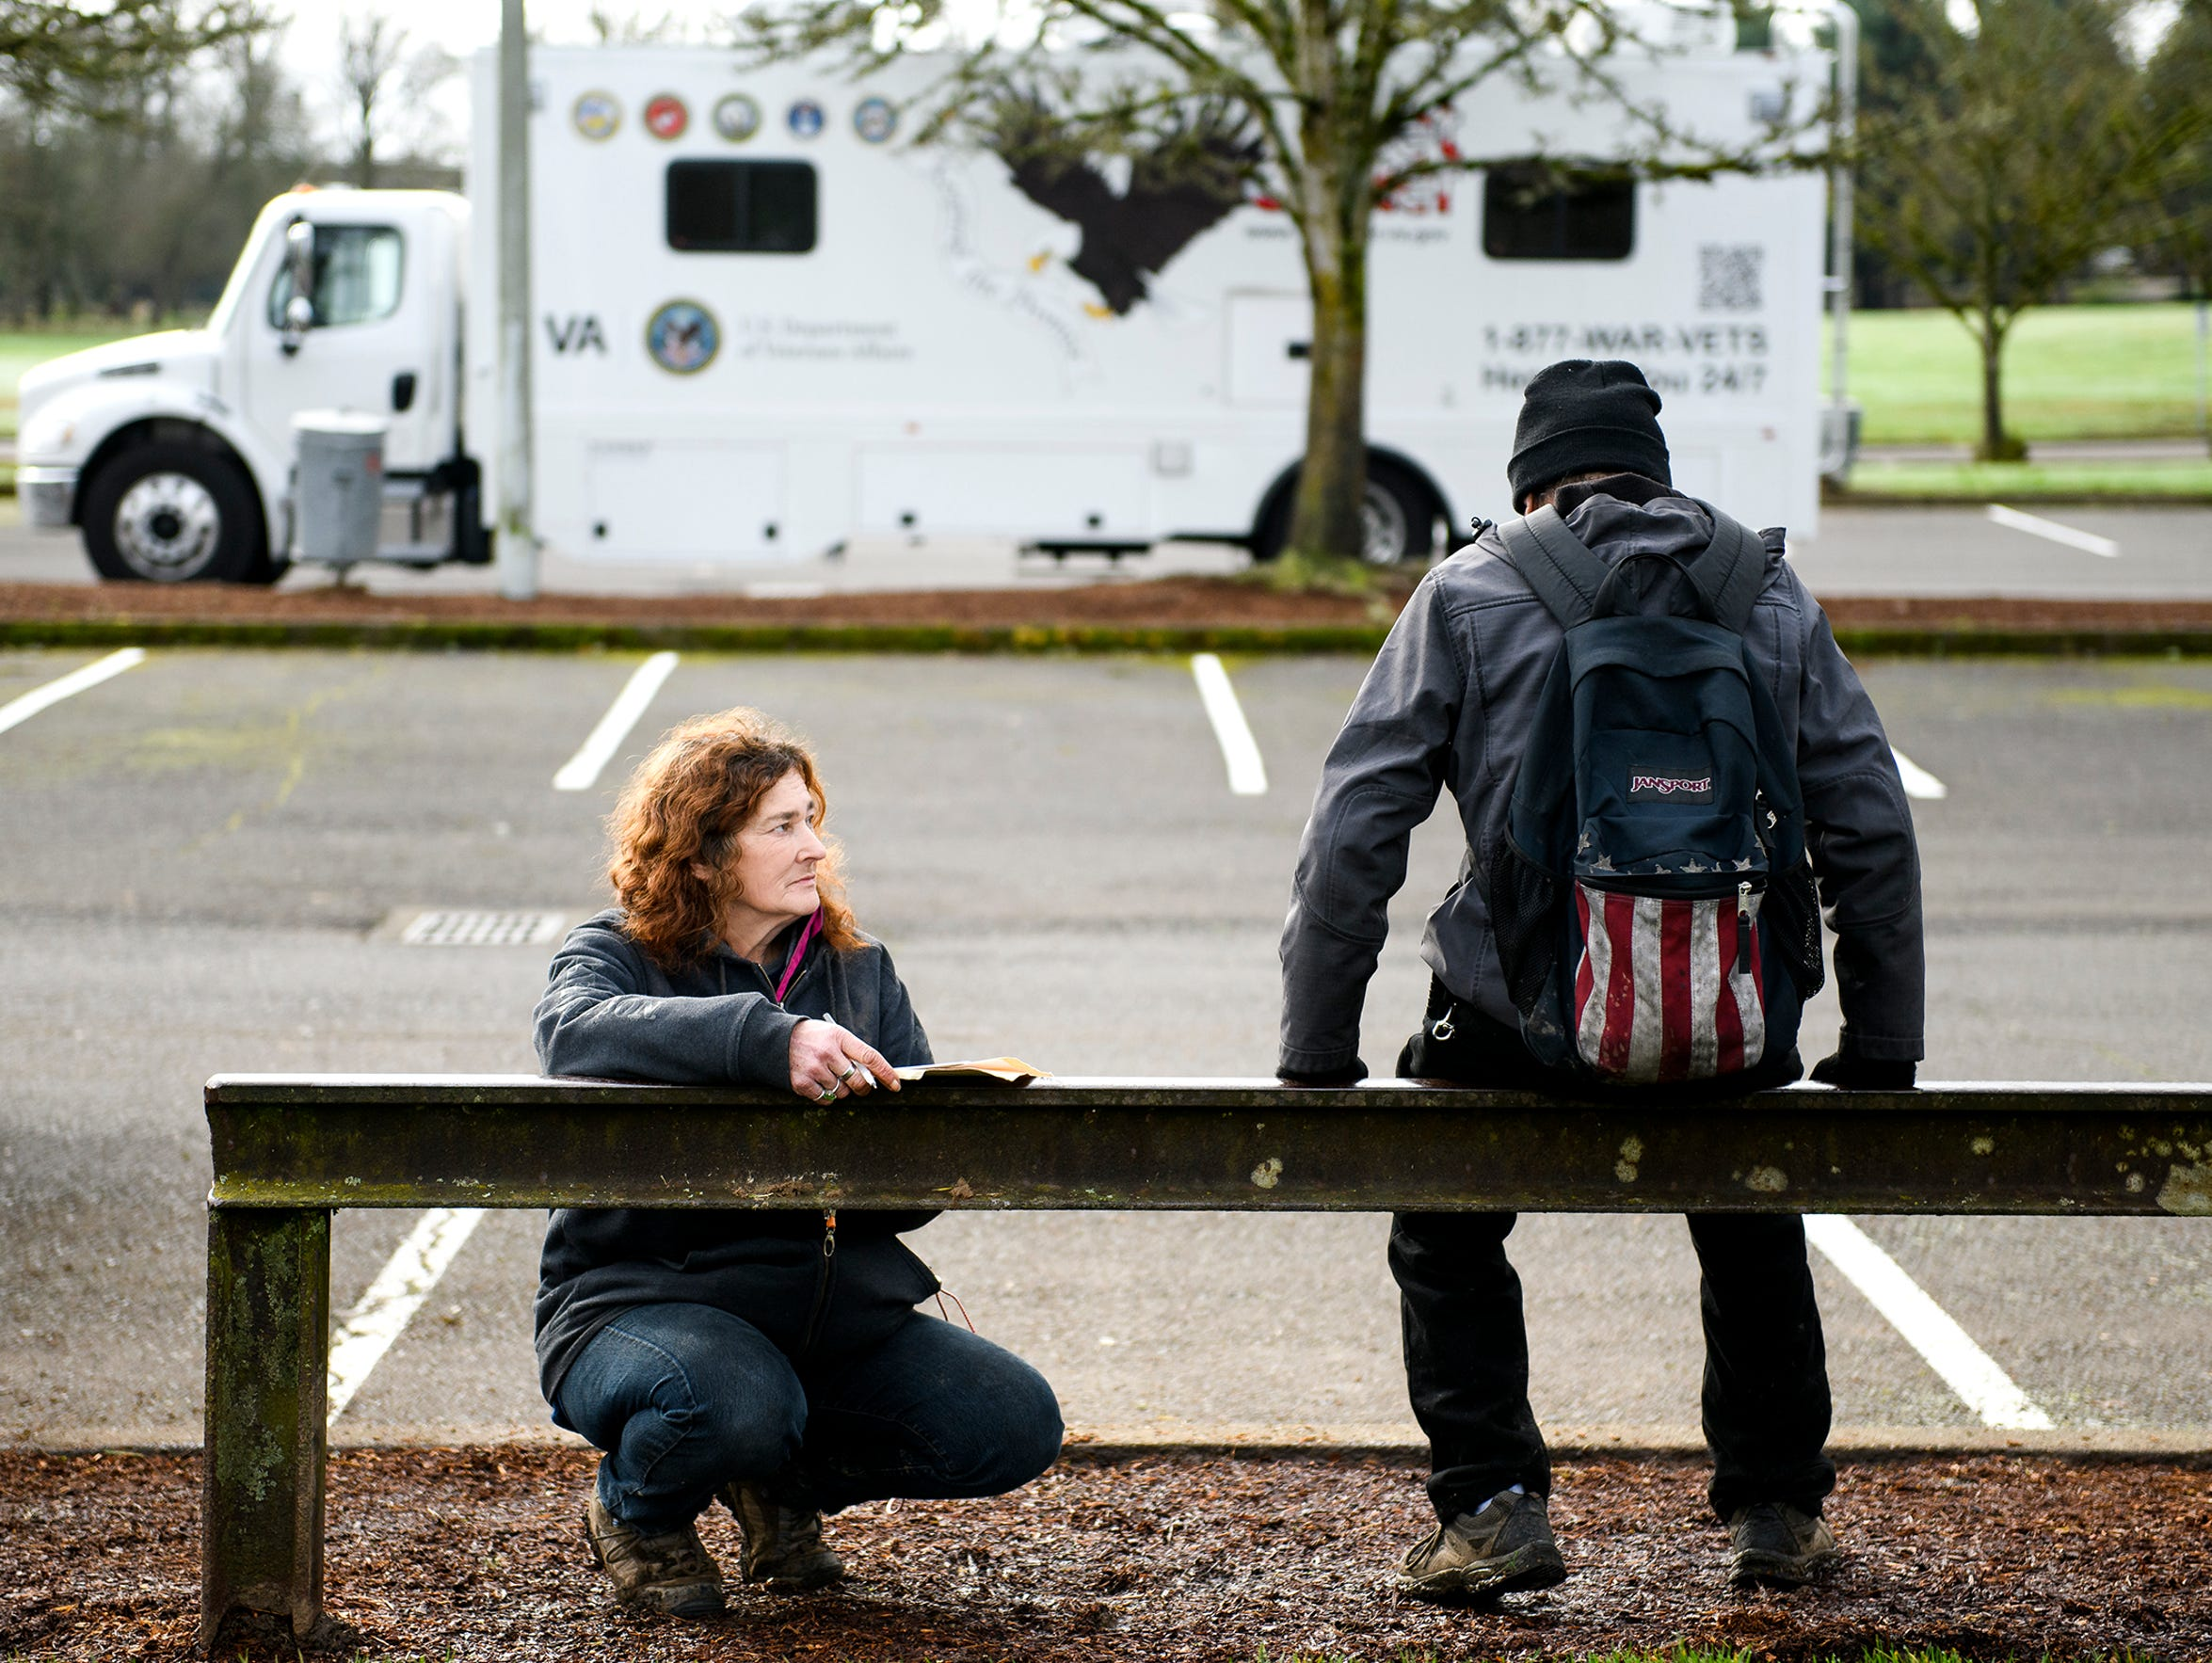 Joan, left, surveys a homeless person at Wallace Marine